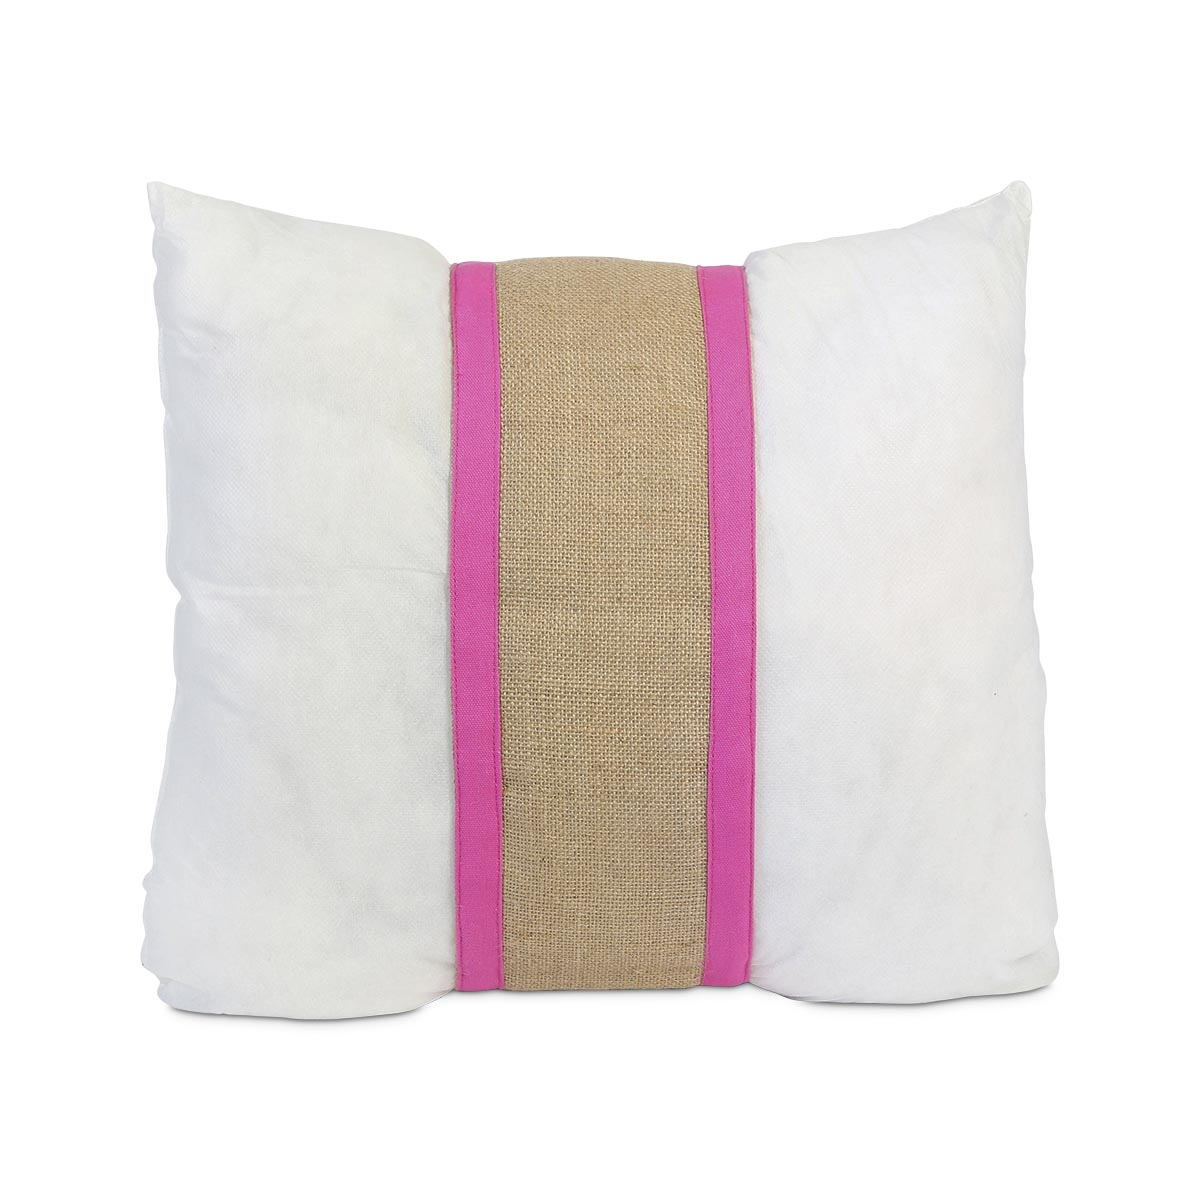 "khaki jute pillow band w/ pink, fits standard 16"" pillow"